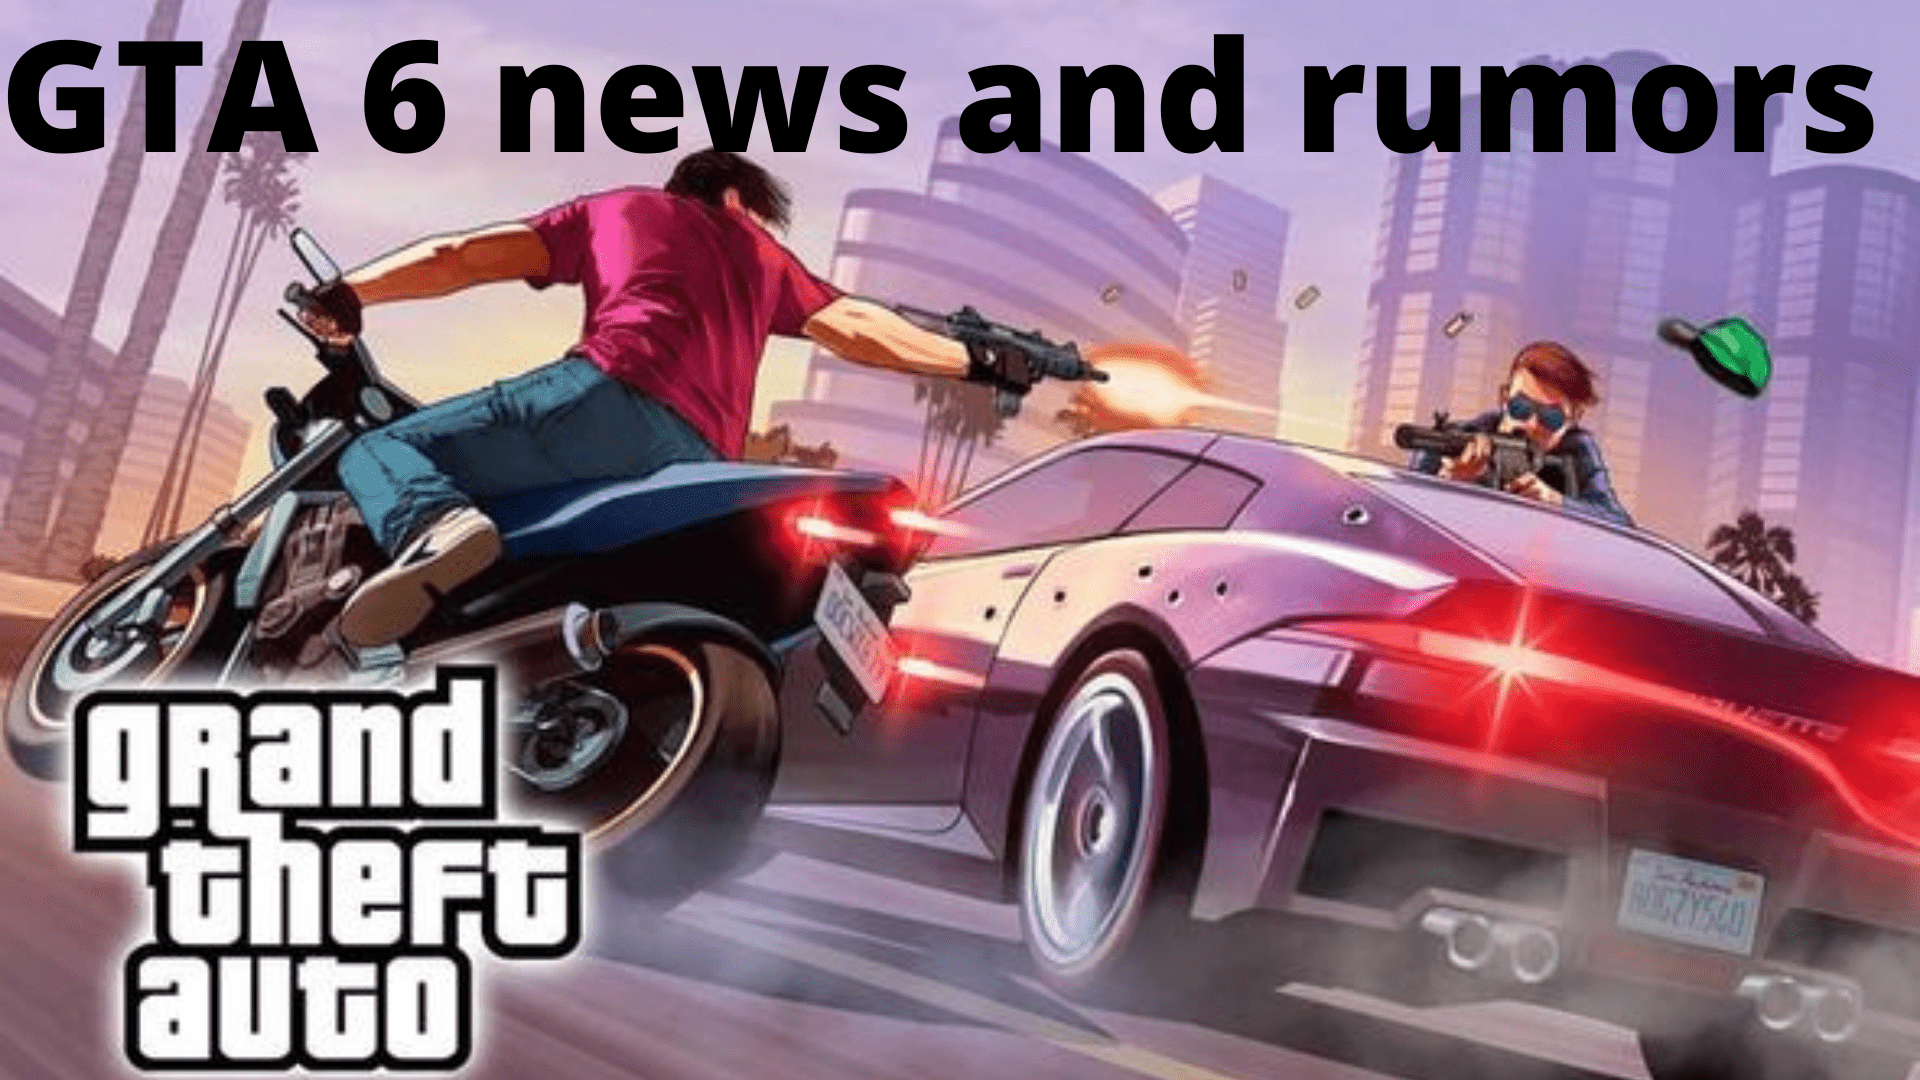 GTA 6 news and rumors